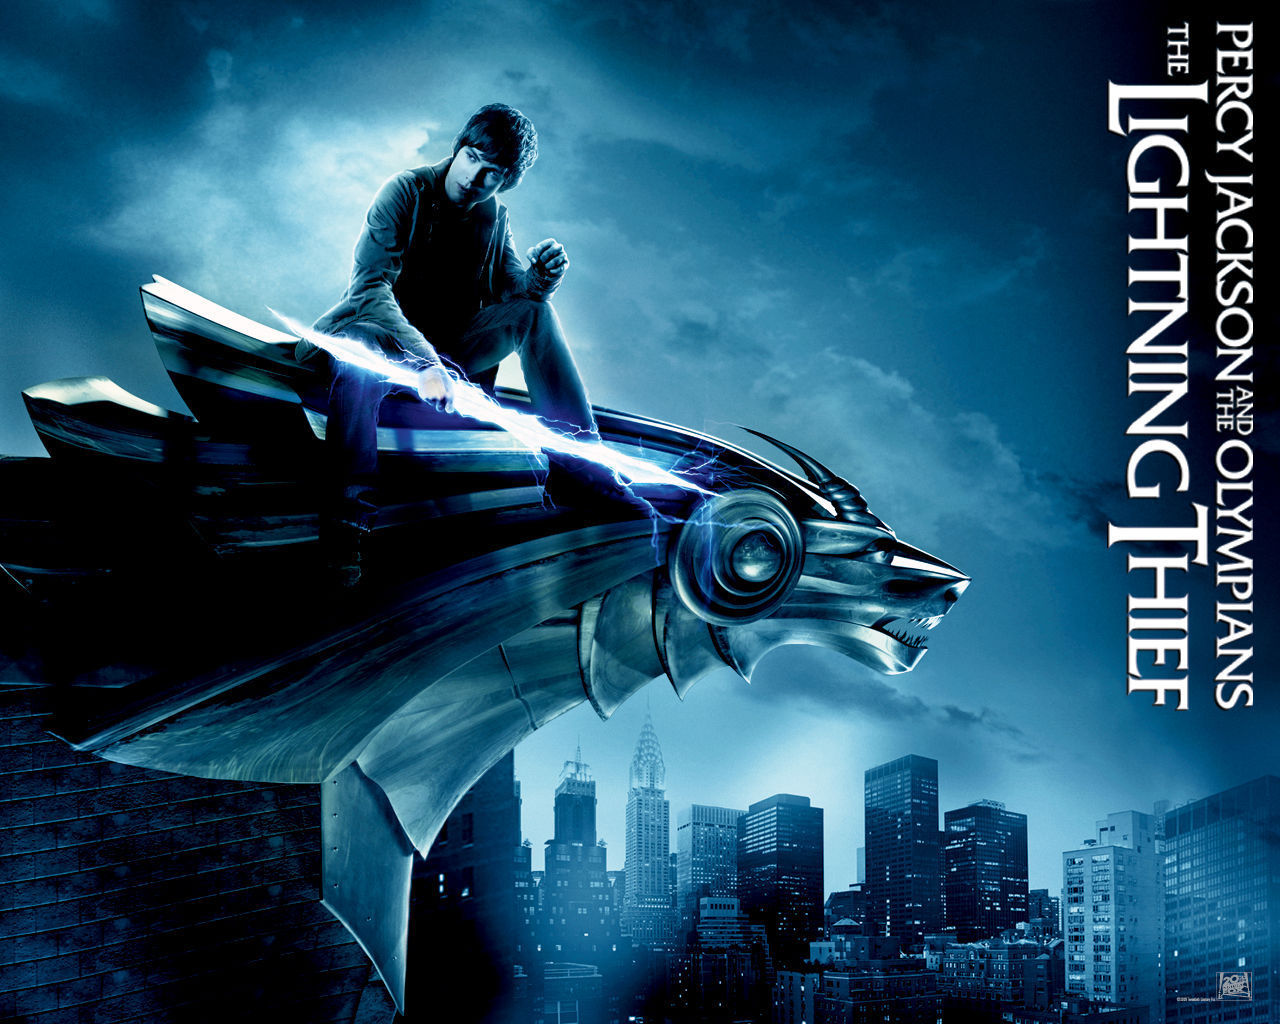 pjo the lightning thief movie images the lightning thief hd